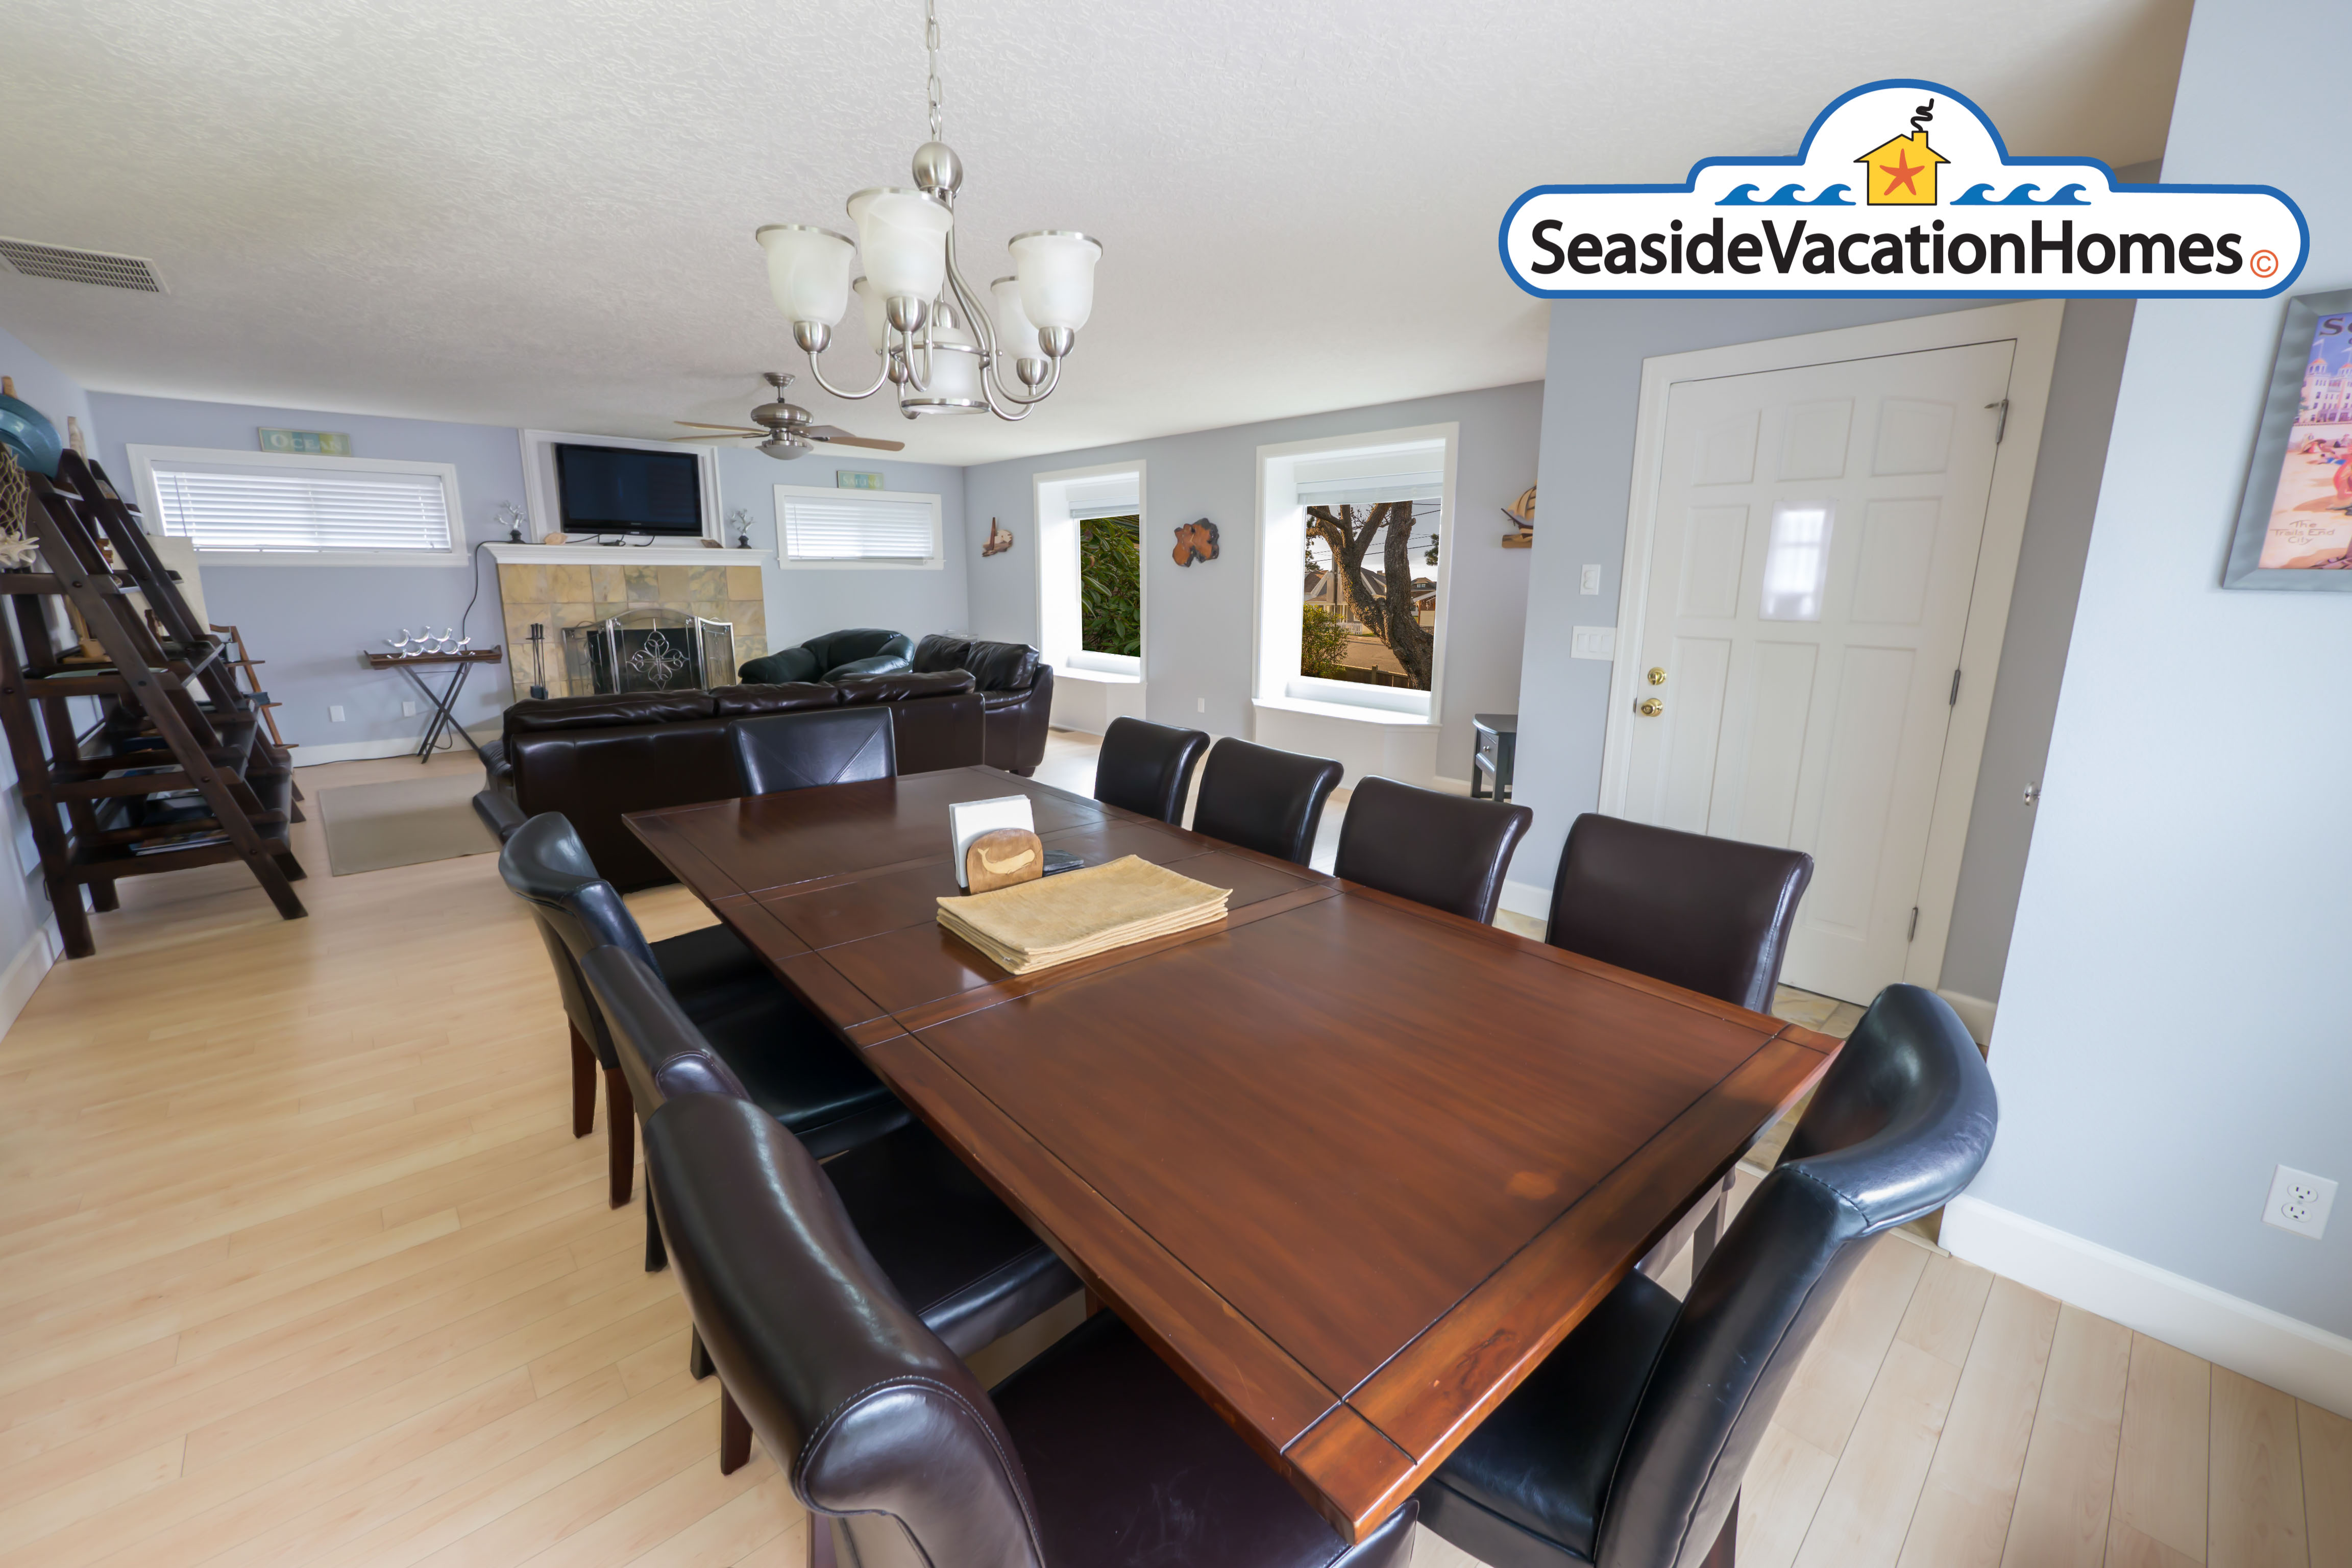 Seaside, OR vacation rentals for Families